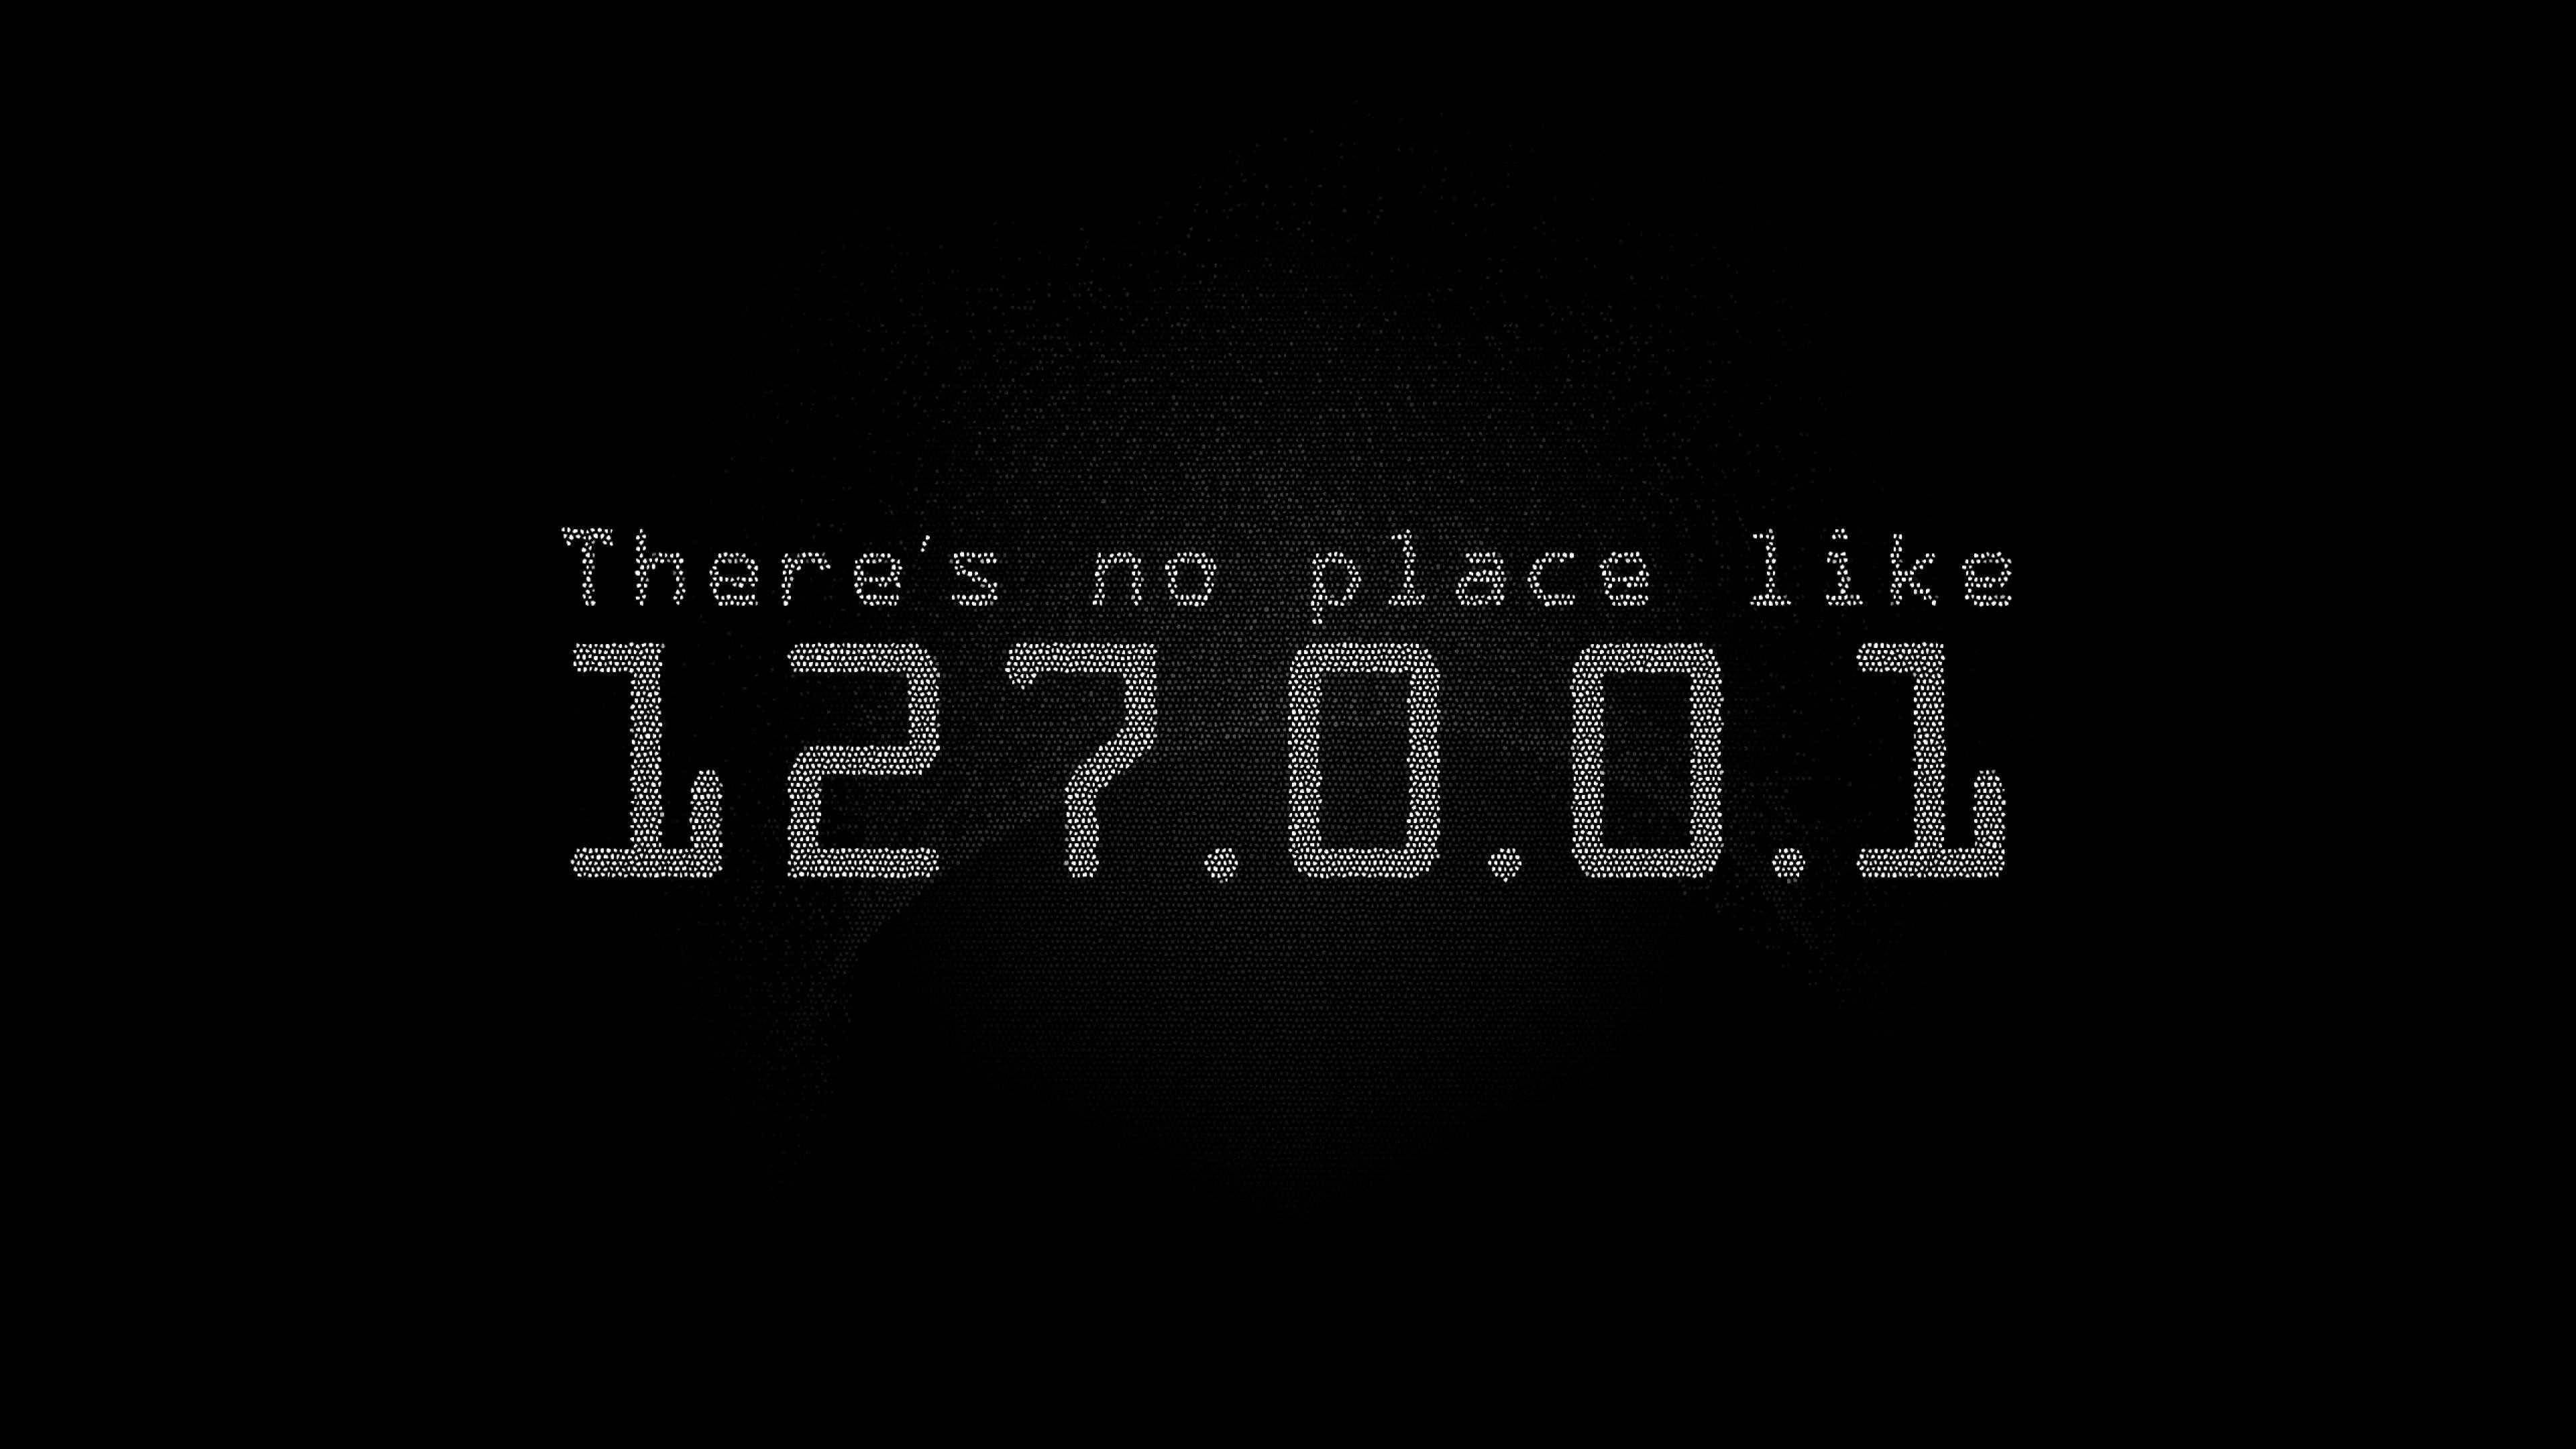 Theres No Place Like Localhost Hd Computer 4k Wallpapers Images